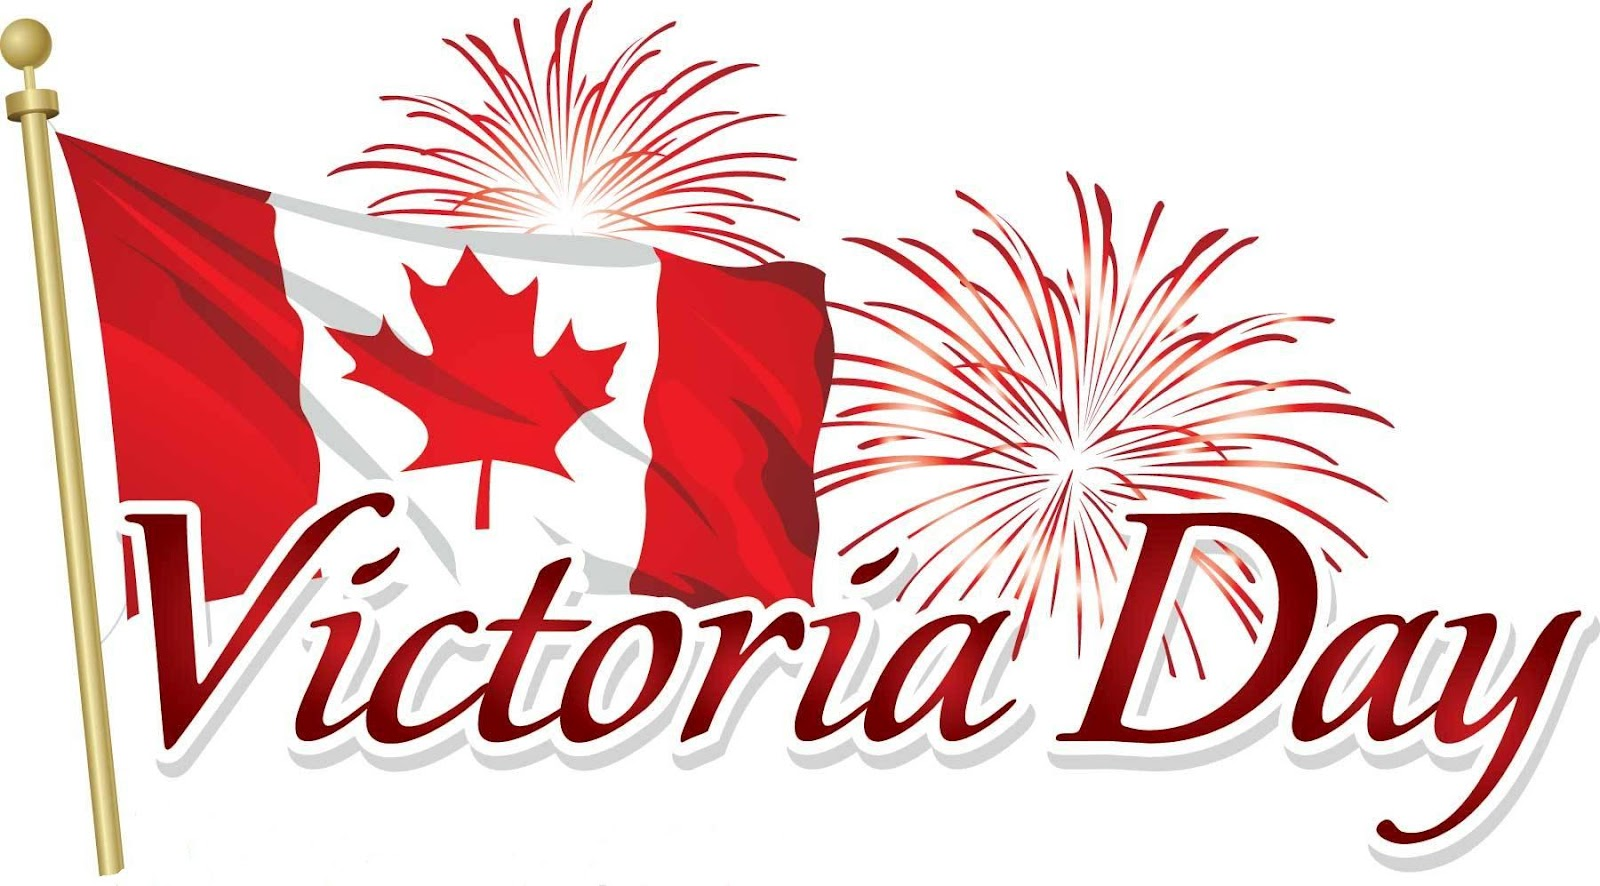 What is put in. 2018 clipart victoria day